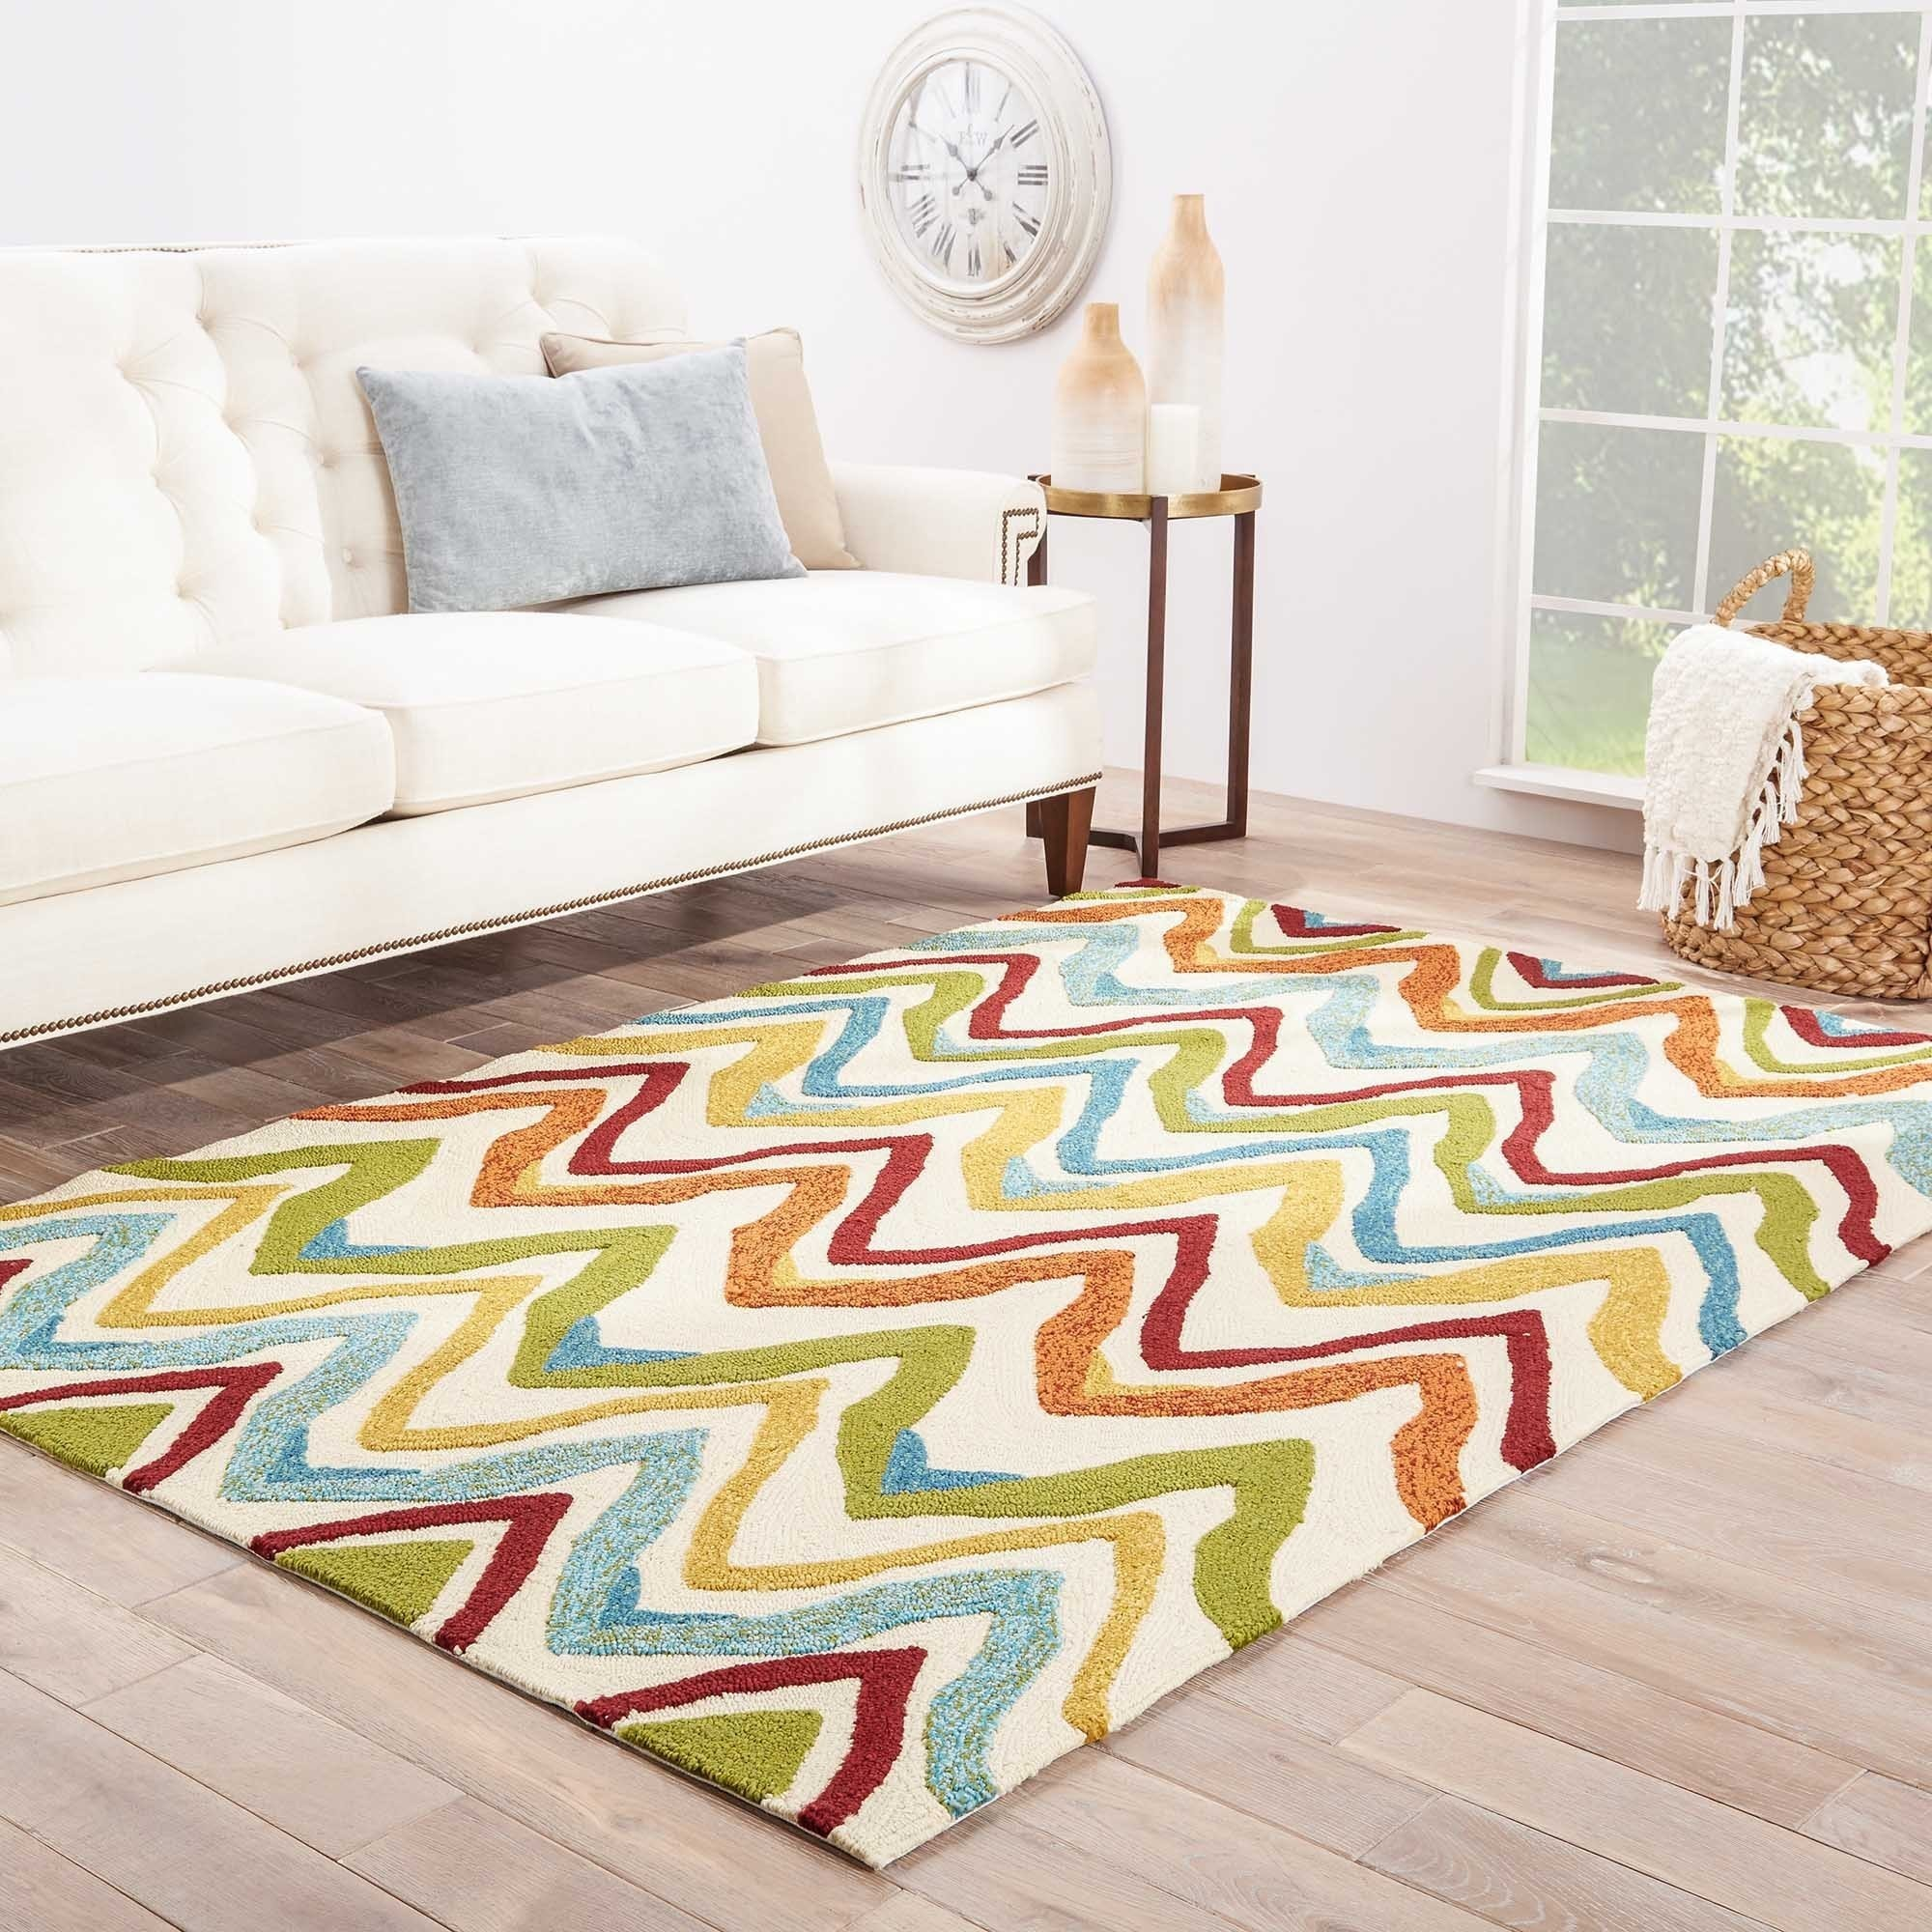 JRCPL Hand-hooked Indoor/ Outdoor Solid Pattern Multi Rug (5' x 7'6) at Sears.com